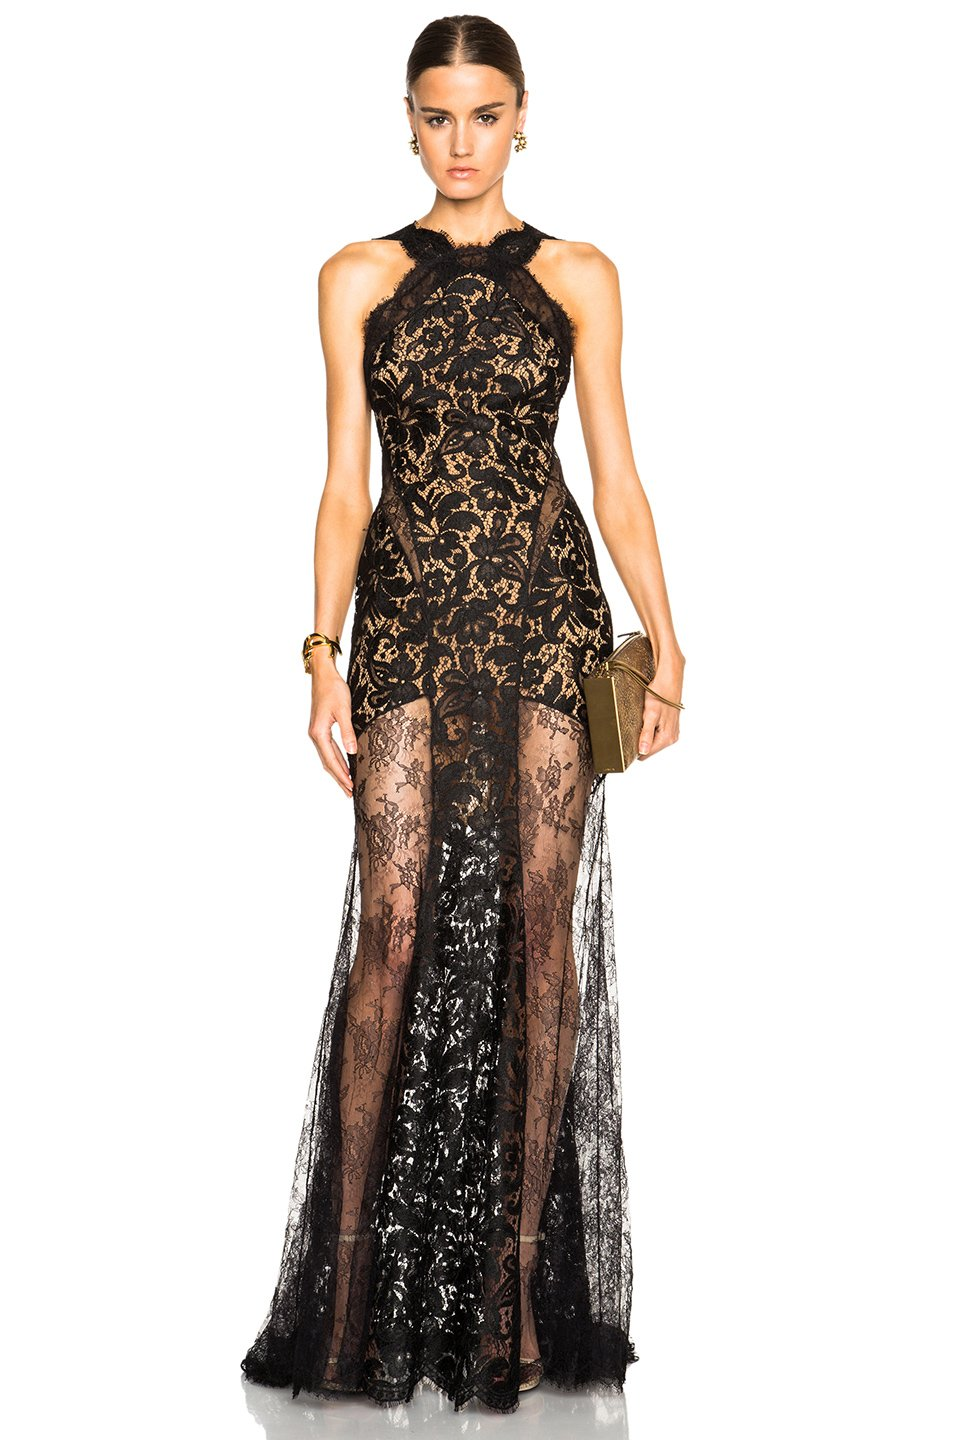 More Details MAG by Magaschoni Long-Sleeve Lace-Inset Sheath Dress, Black Lace Details Magaschoni ponte dress. Approx. length: 38